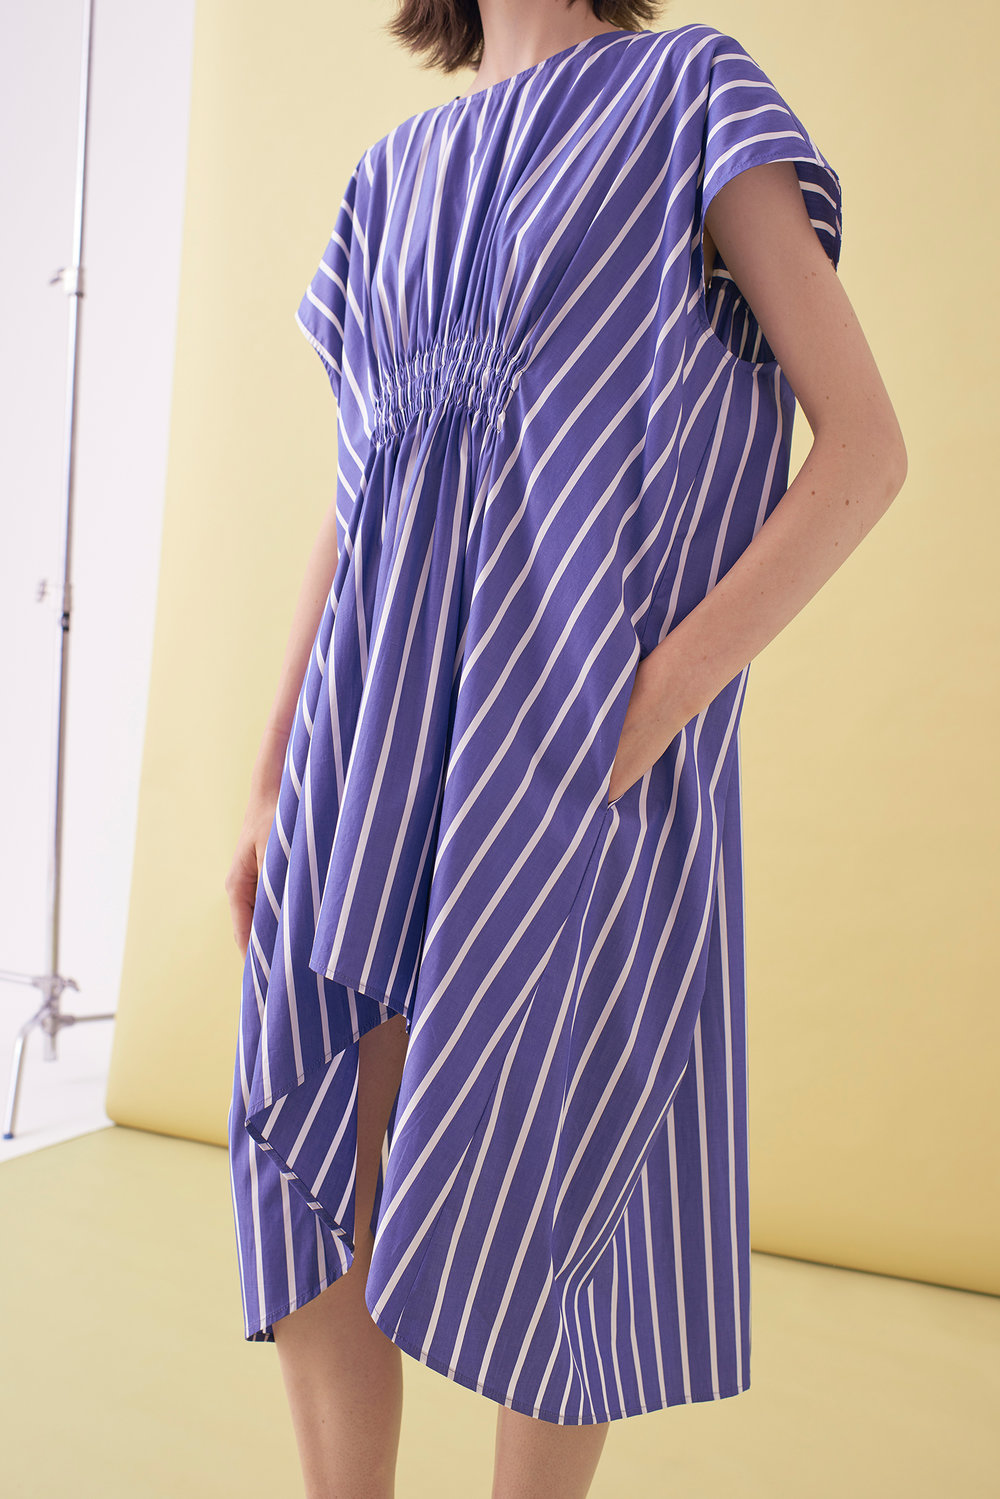 Sarah_Swann_SS17_01_Striped_Shirring_Dress_CeruleanBlue_D02.jpg